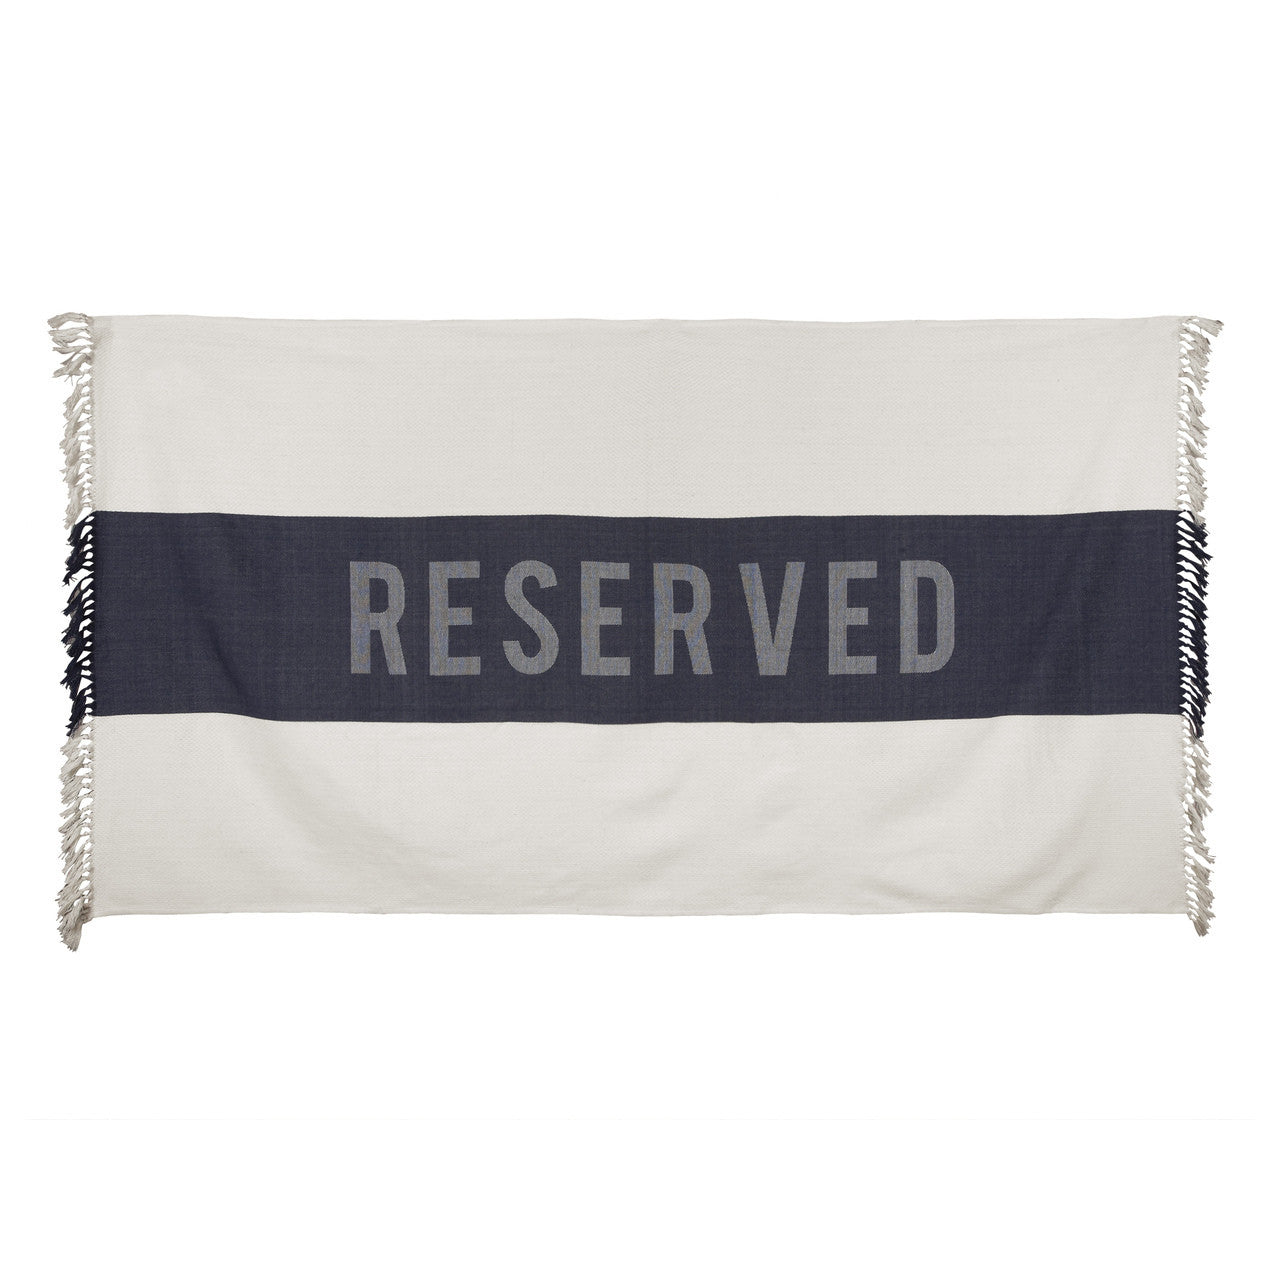 Reserved Beach Towel in Indigo design by Sir/Madam